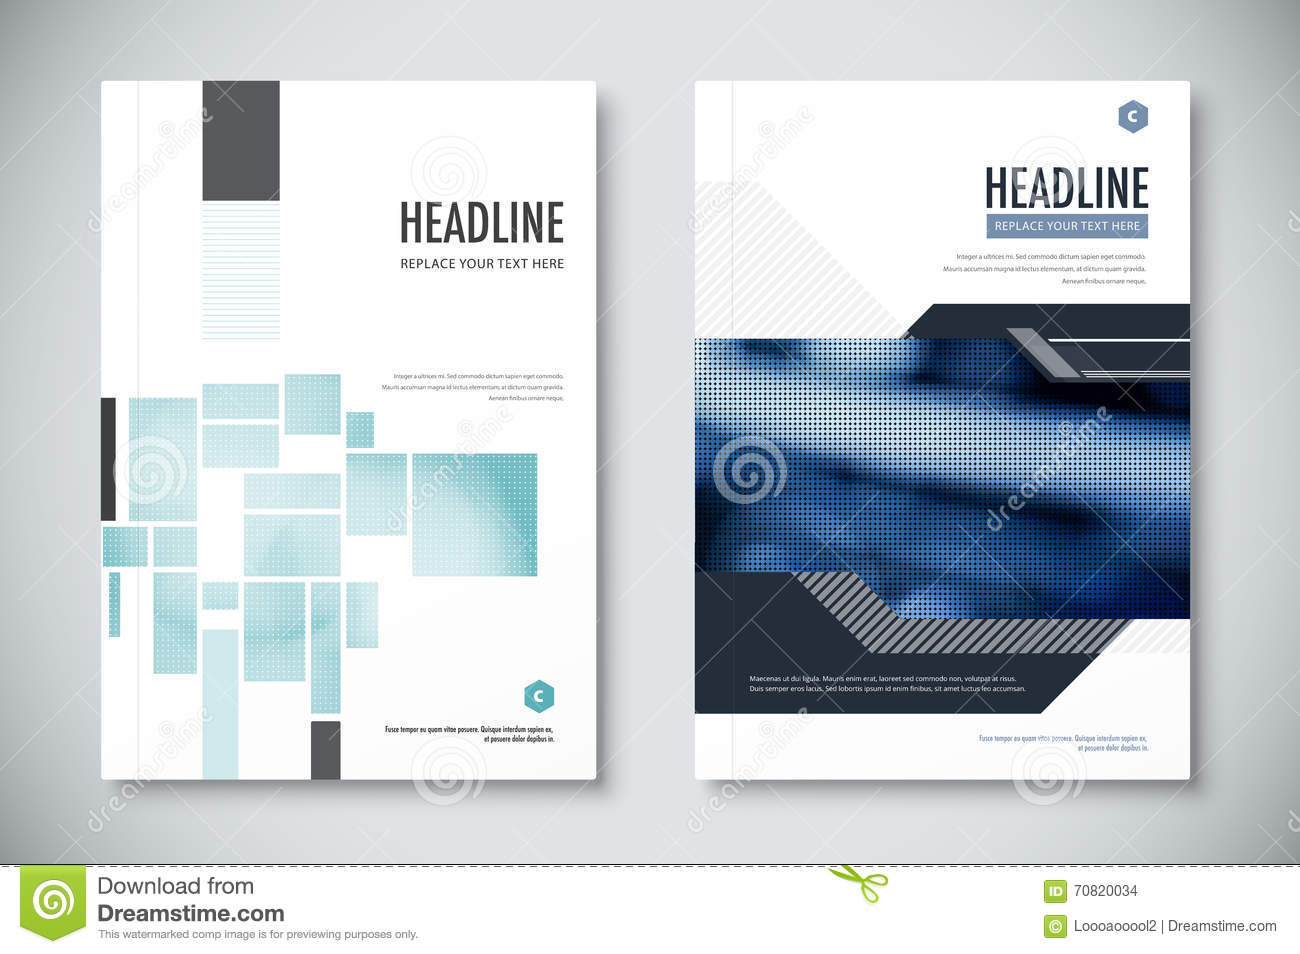 corporate-annual-report-template-design-corporate-business-document-design-vector-illustration-70820034.jpg